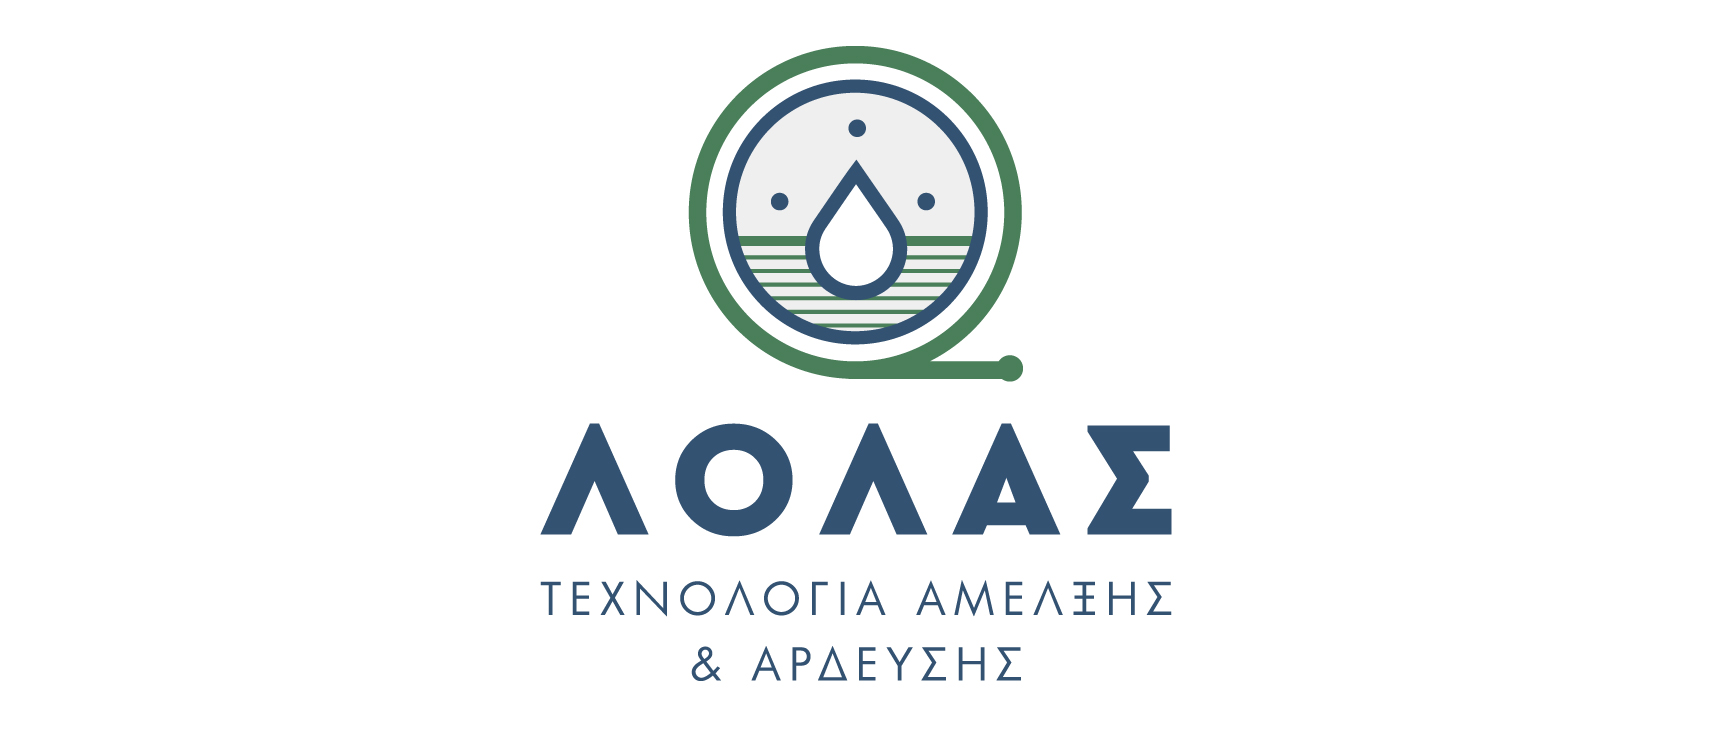 Project Λόλας cover